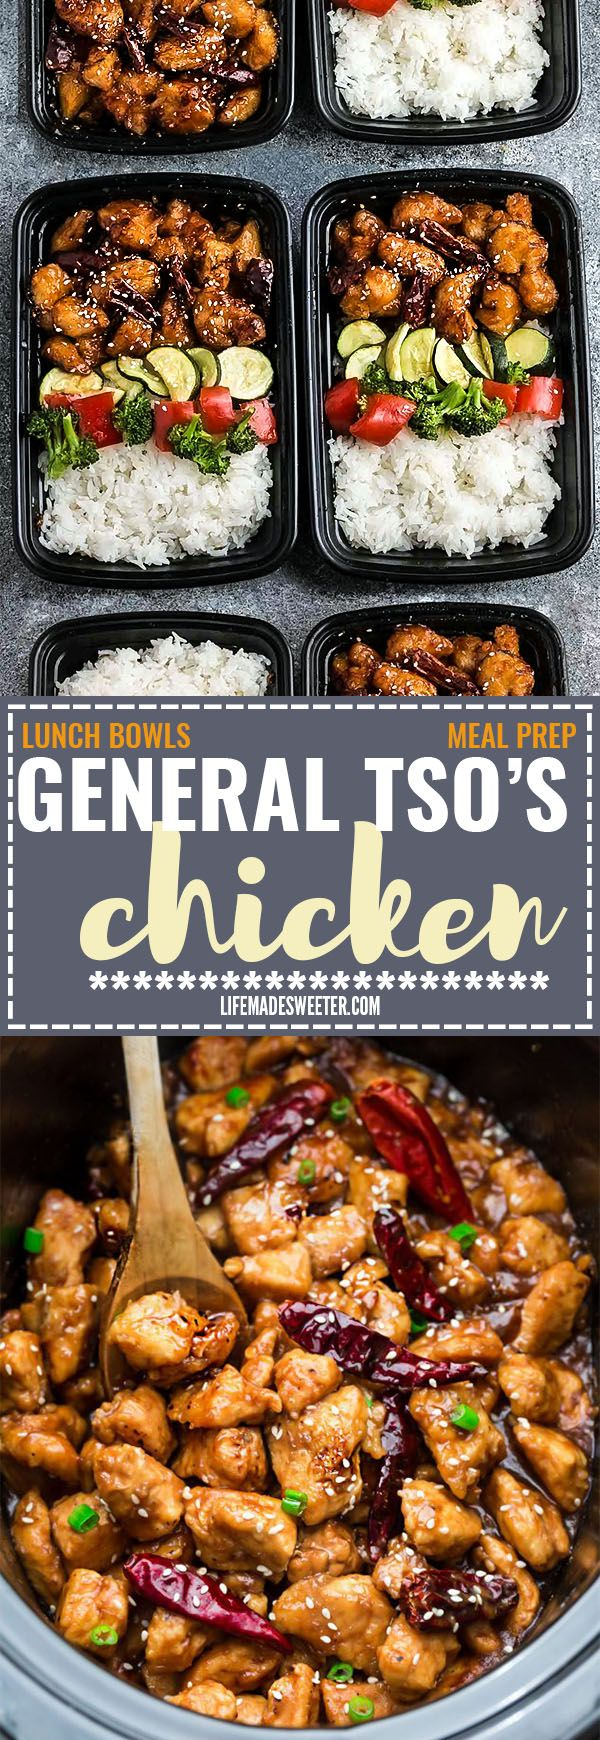 Slow Cooker or Instant Pot General Tso's Chicken Meal Prep Lunch Bowls - coated in a sweet, savory and spicy sauce that is even better than your local takeout restaurant! Best of all, it's full of authentic flavors and super easy to make with just 15 minutes of prep time. Skip that takeout menu! This is so much better and healthier! With gluten free and paleo friendly options. Weekly meal prep for the week and leftovers are great for lunch bowls or lunch boxes for work or school.